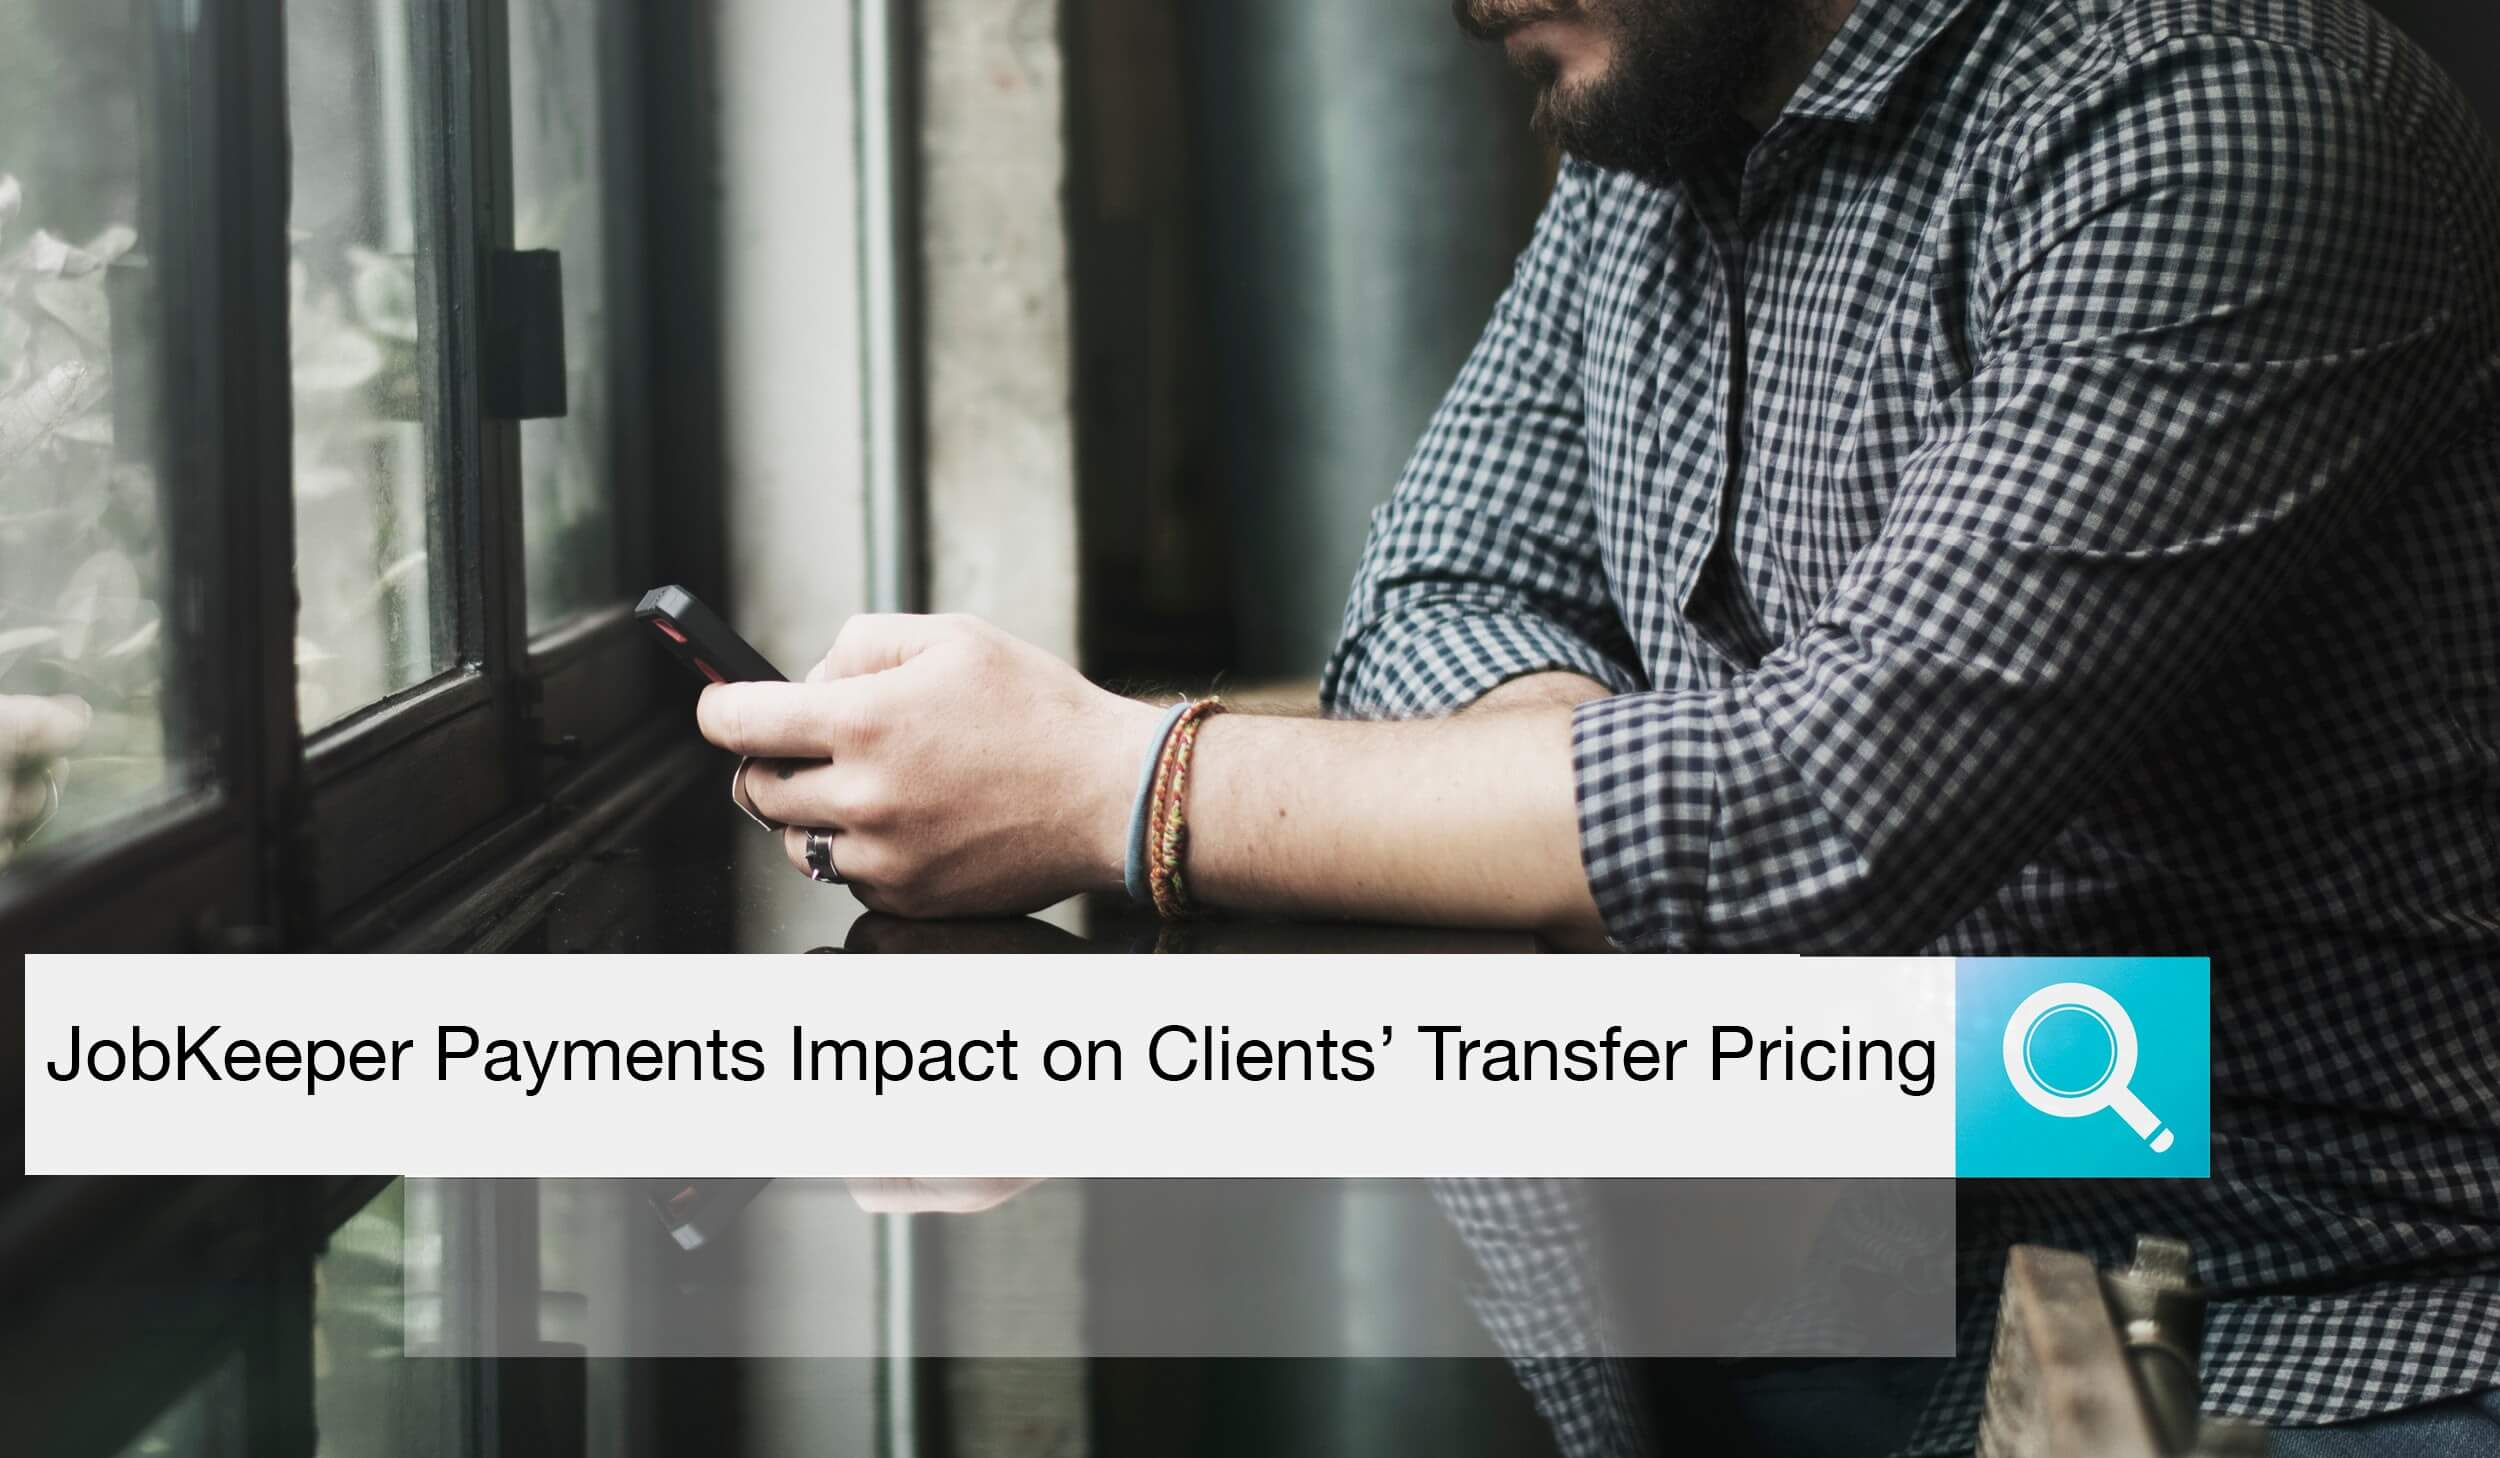 JobKeeper Payments - Impact on Your Clients' Transfer Pricing